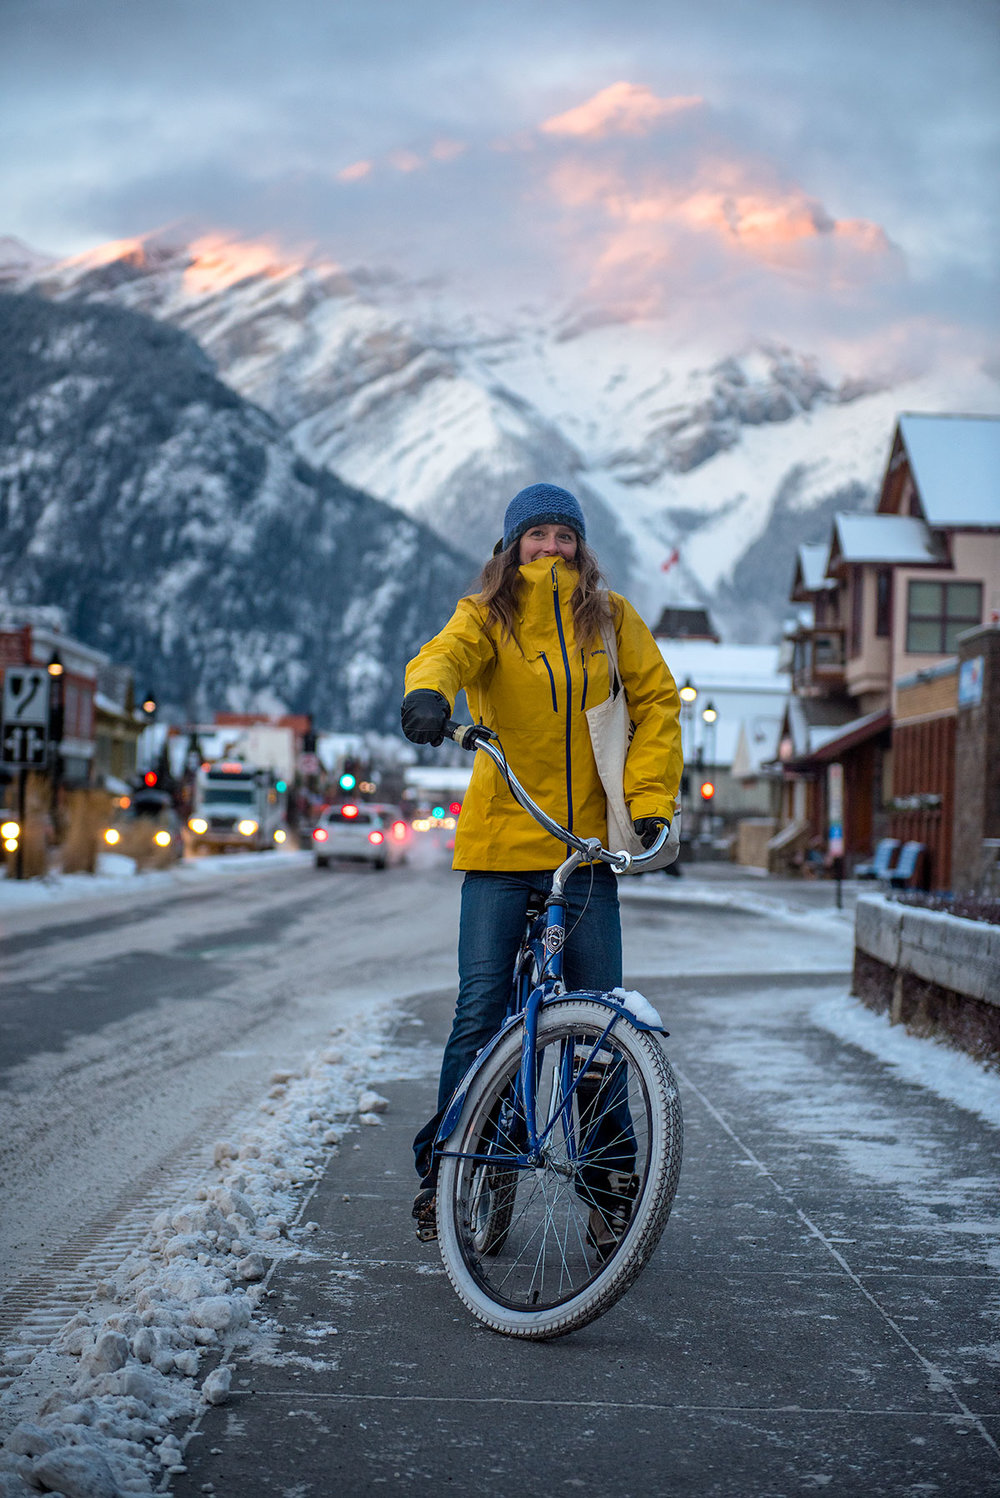 austin-trigg-patagonia-banff-alberta-winter-downtown-lifestyle-sunset-mountain-town-road-bicycle-yoga.jpg